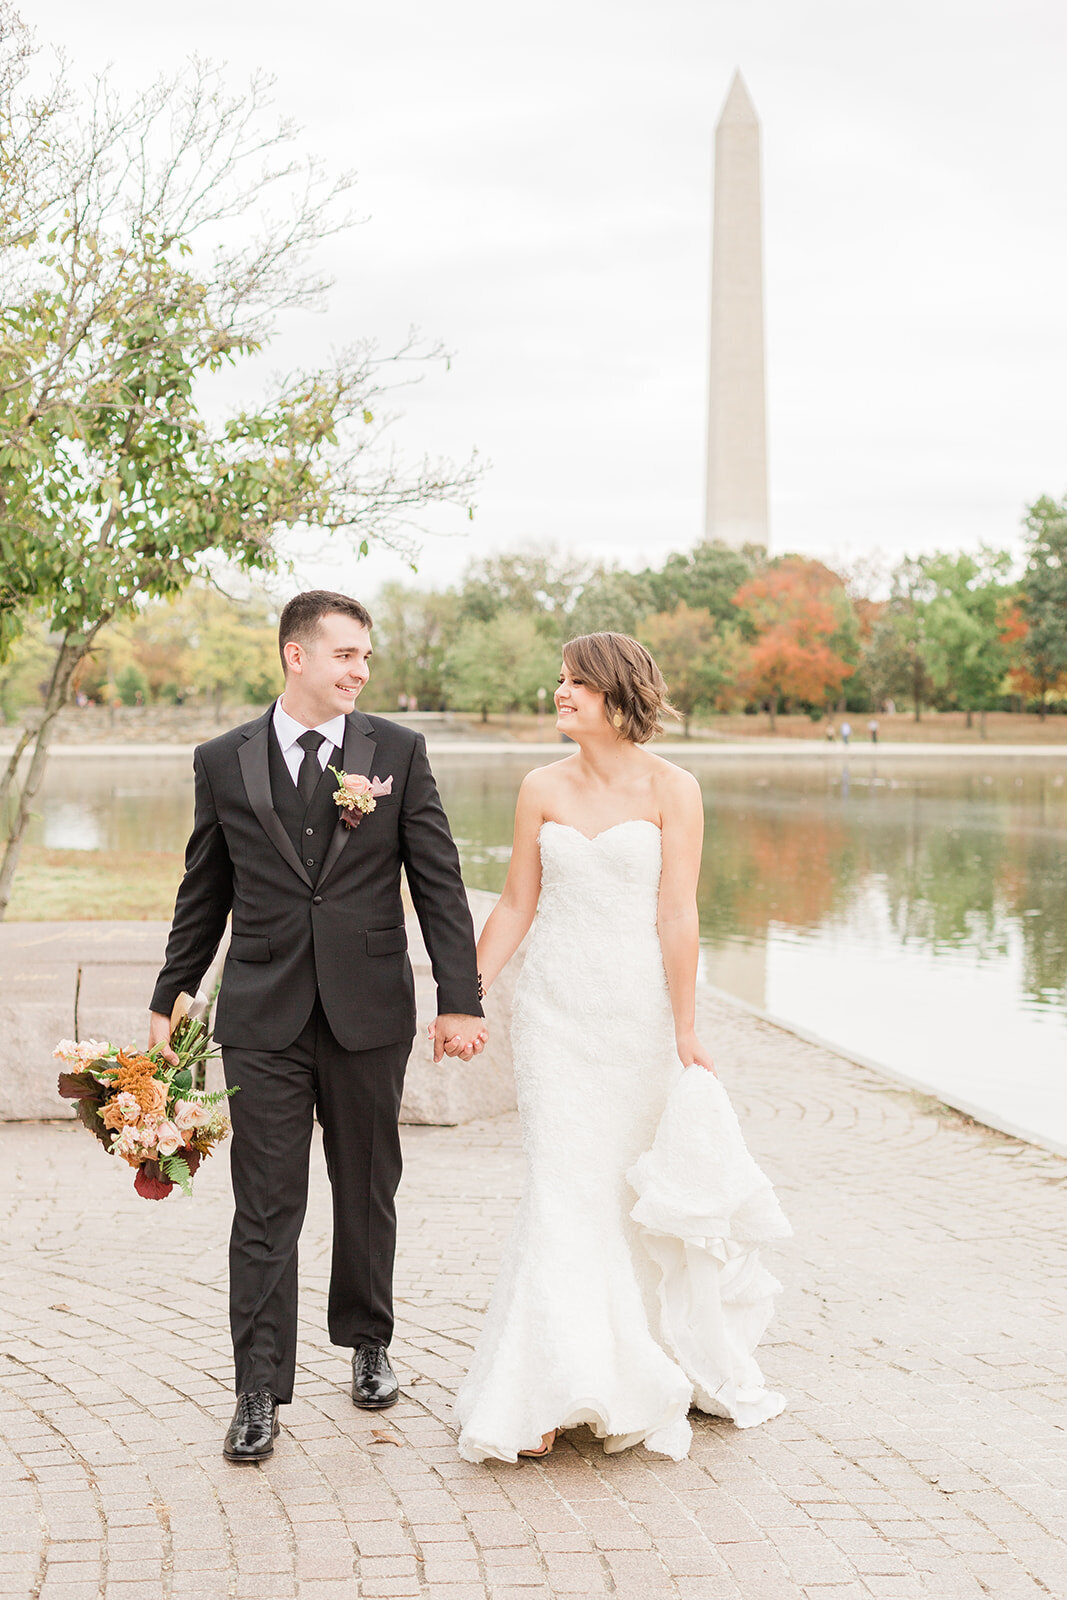 Shanna+Connor_DC_Oct2019_KelseyMariePhotography_SS-9088_websize